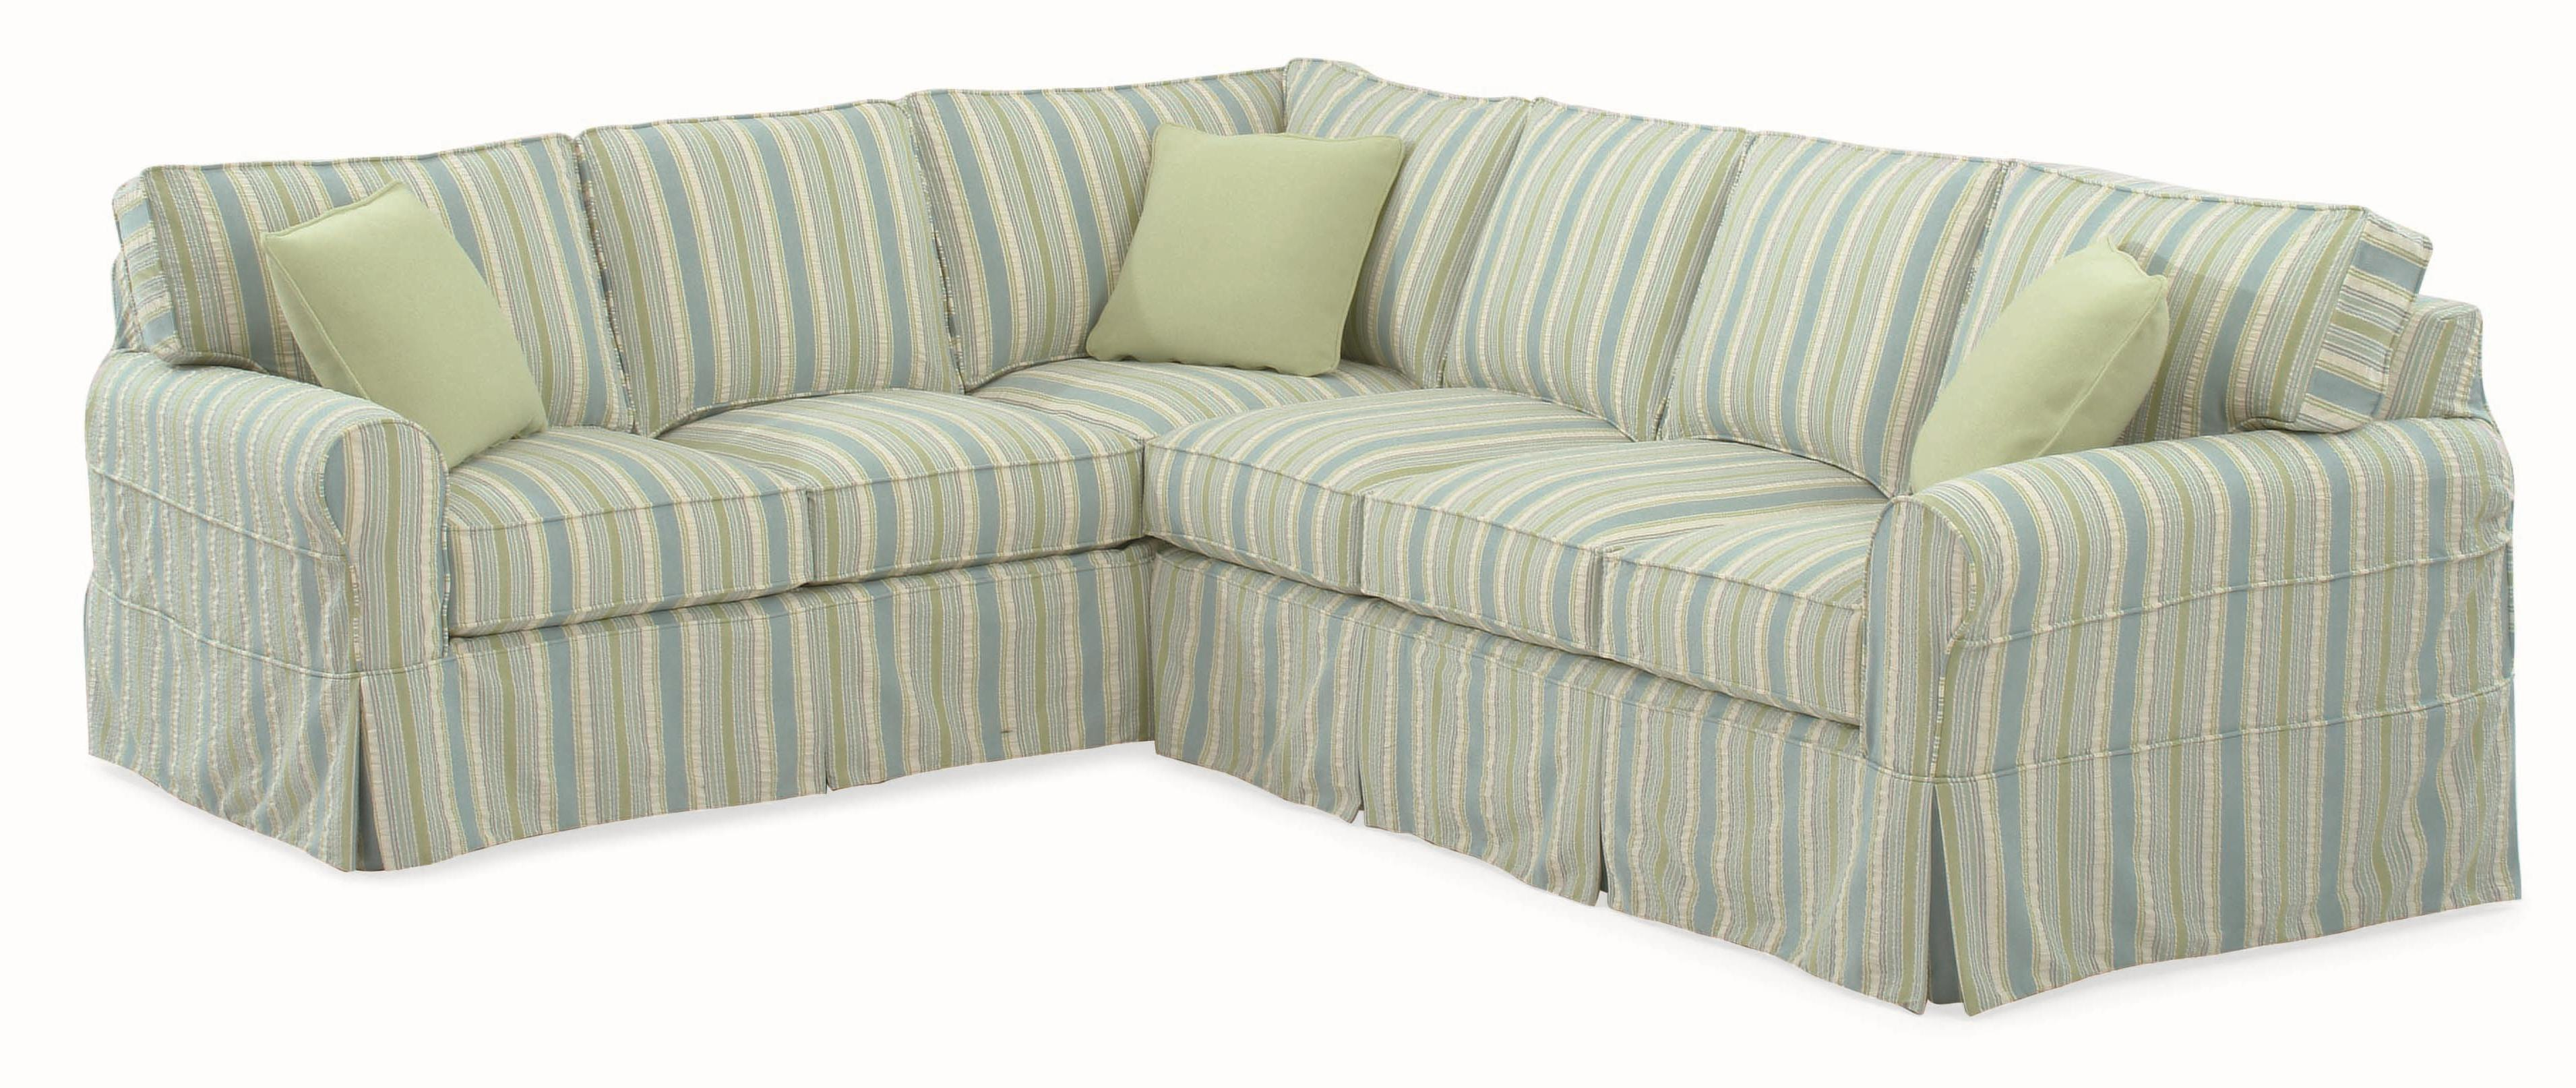 728 Sectional Sofa with Slipcover by Braxton Culler at Esprit Decor Home Furnishings